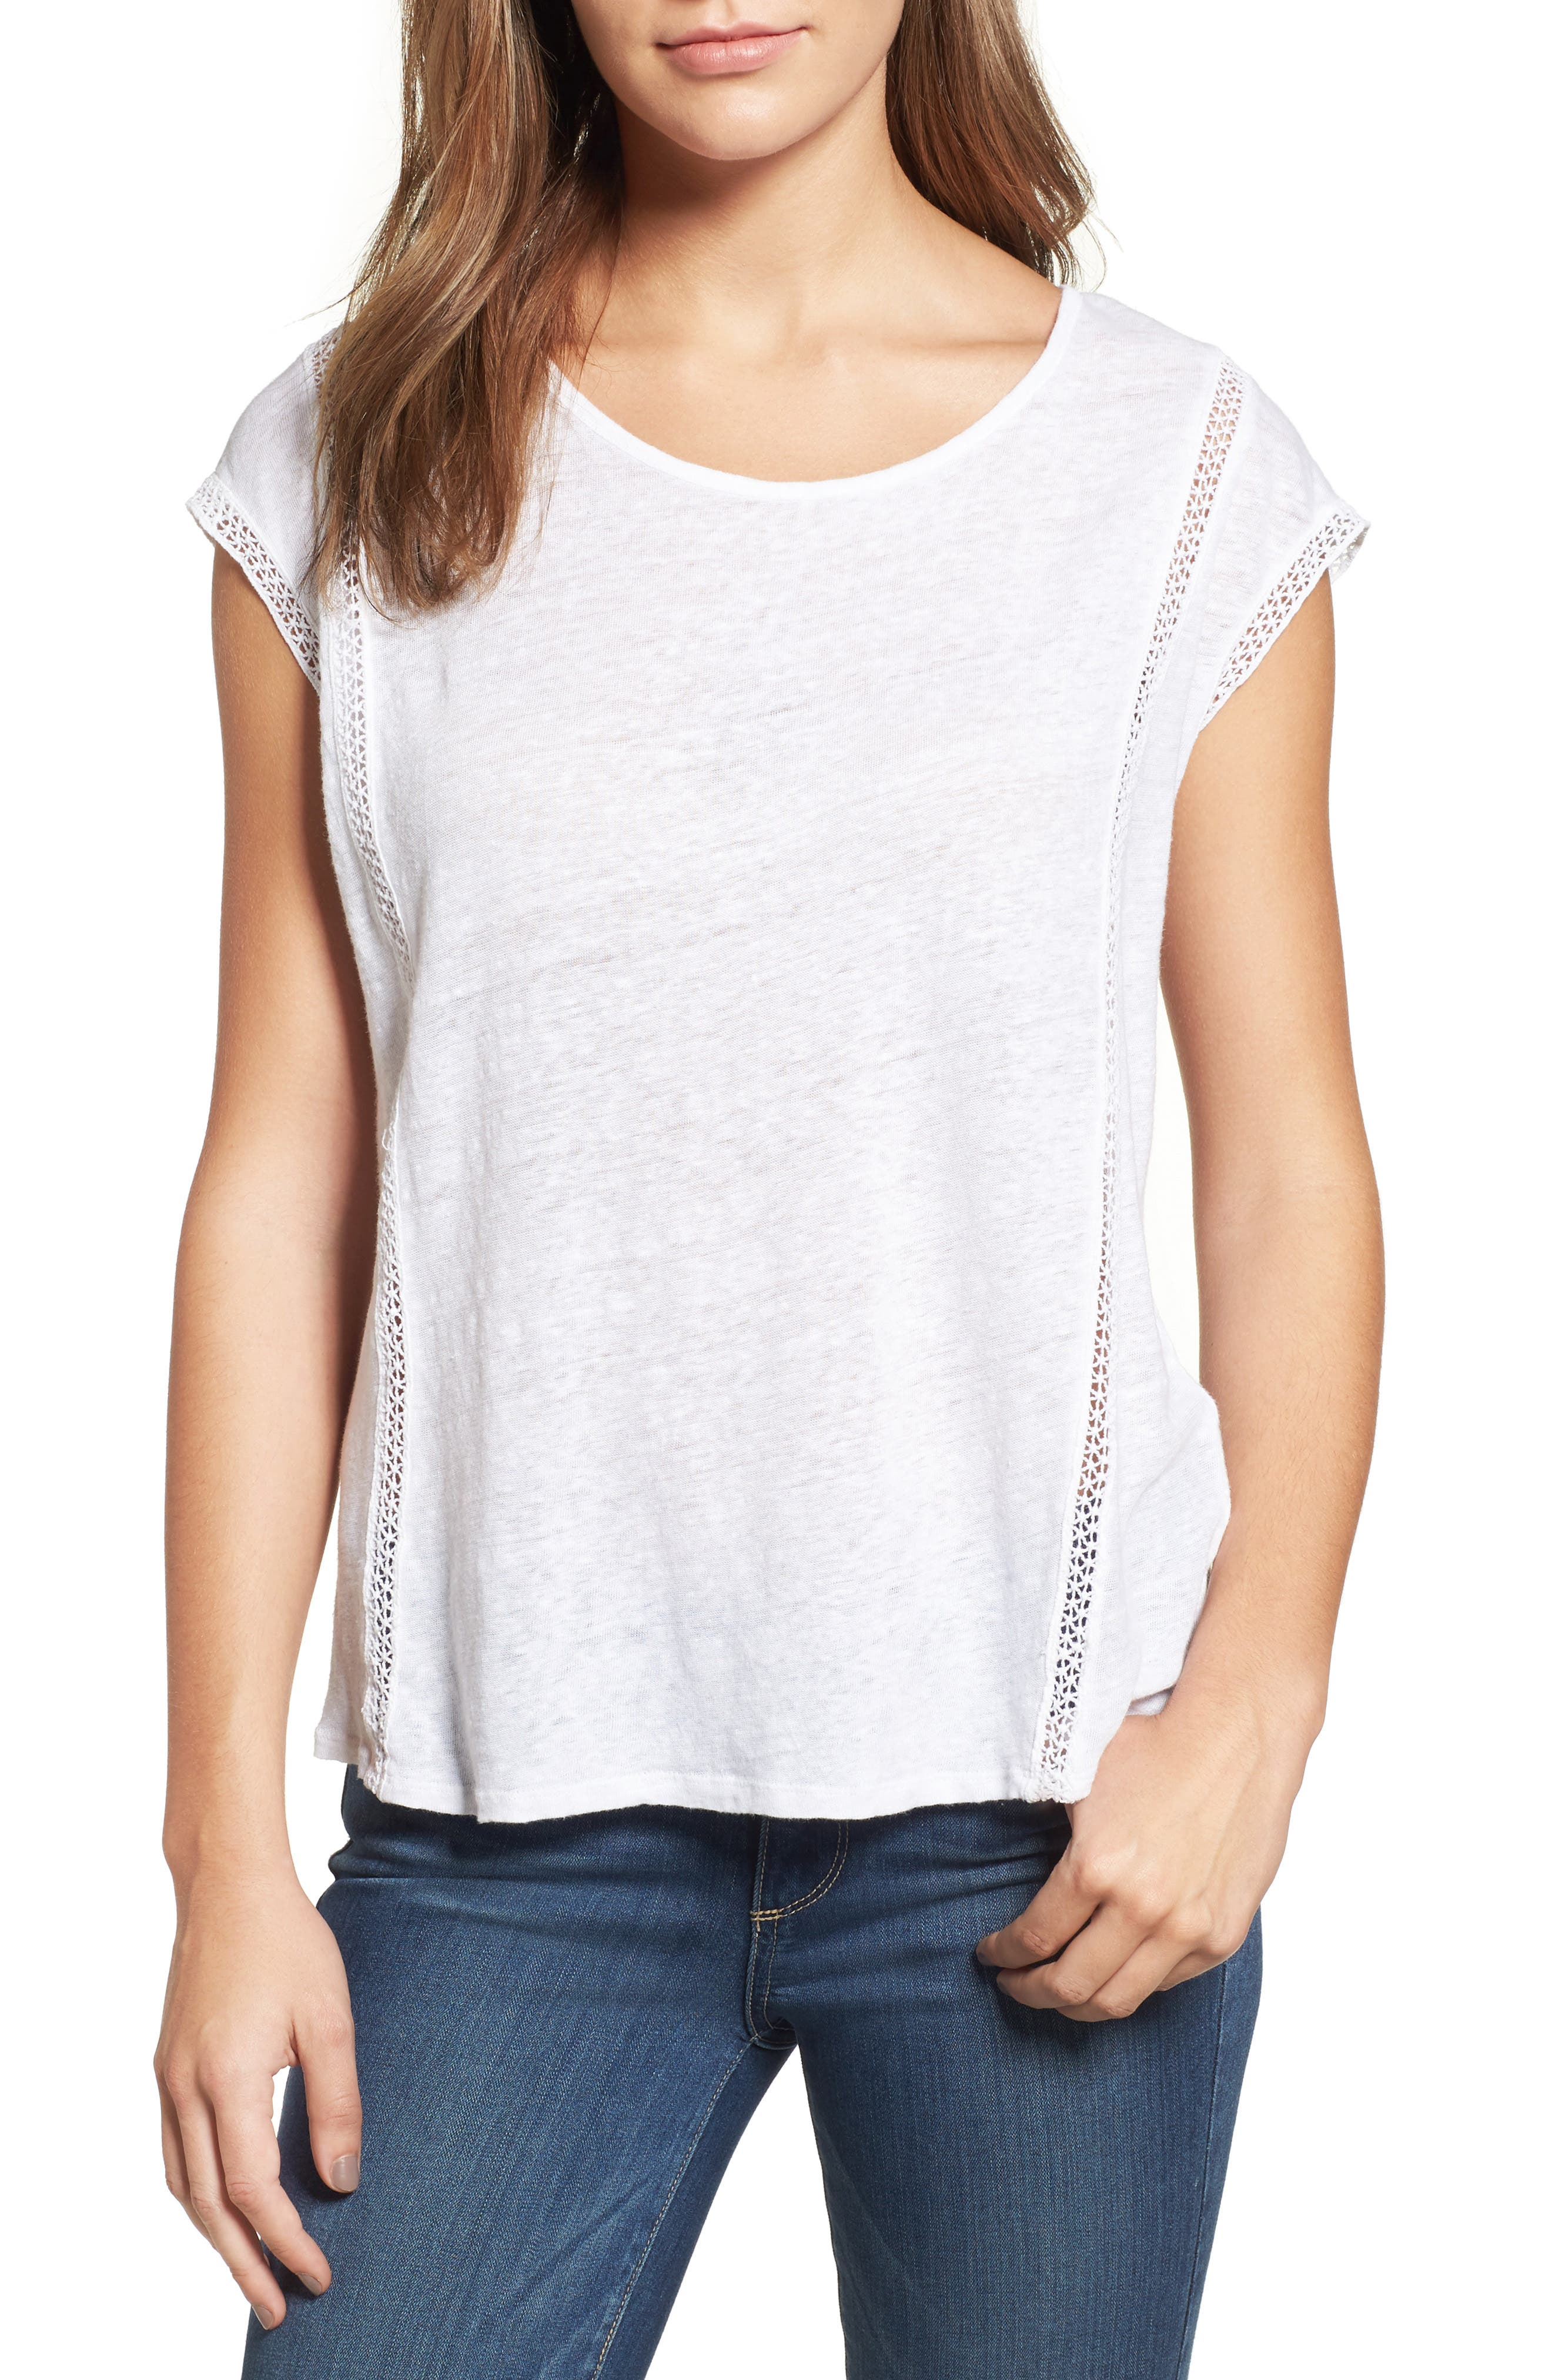 Alternate Image 1 Selected - Two by Vince Camuto Linen Tee